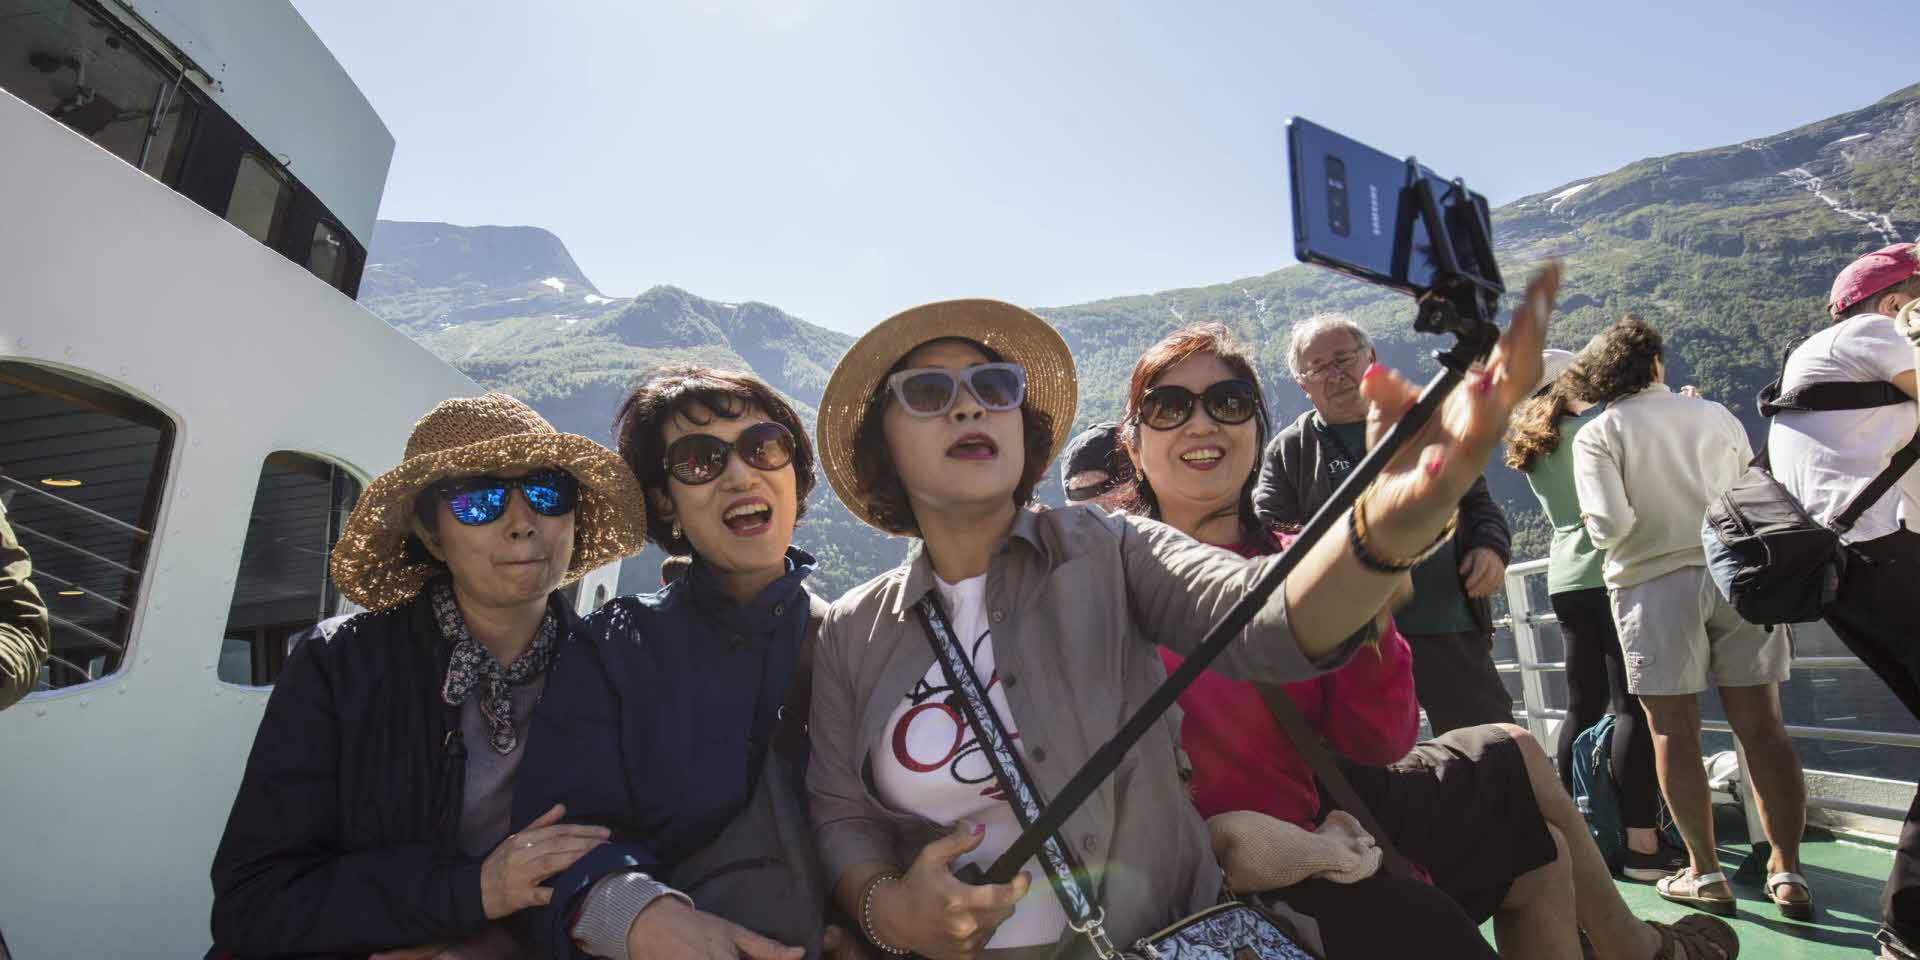 Four women taking a selfie on a ferry in Geiranger